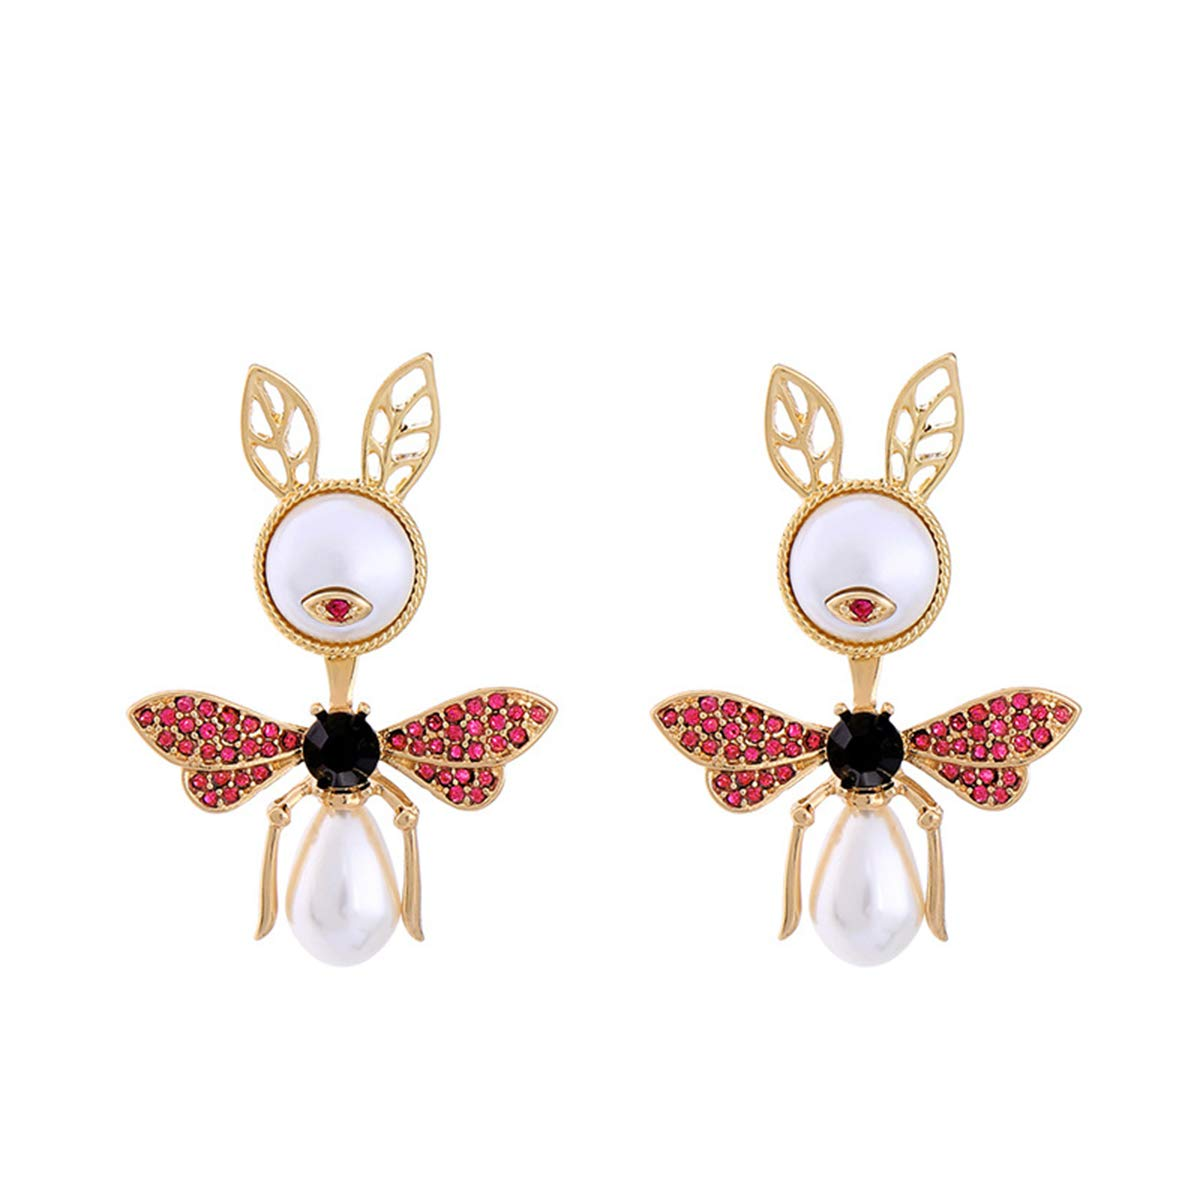 Libaraba Rhinestone and Crystal Accent Simulated Pearl Little Ant Stud Earrings with Jewelry Box,Ant Earrings for Women